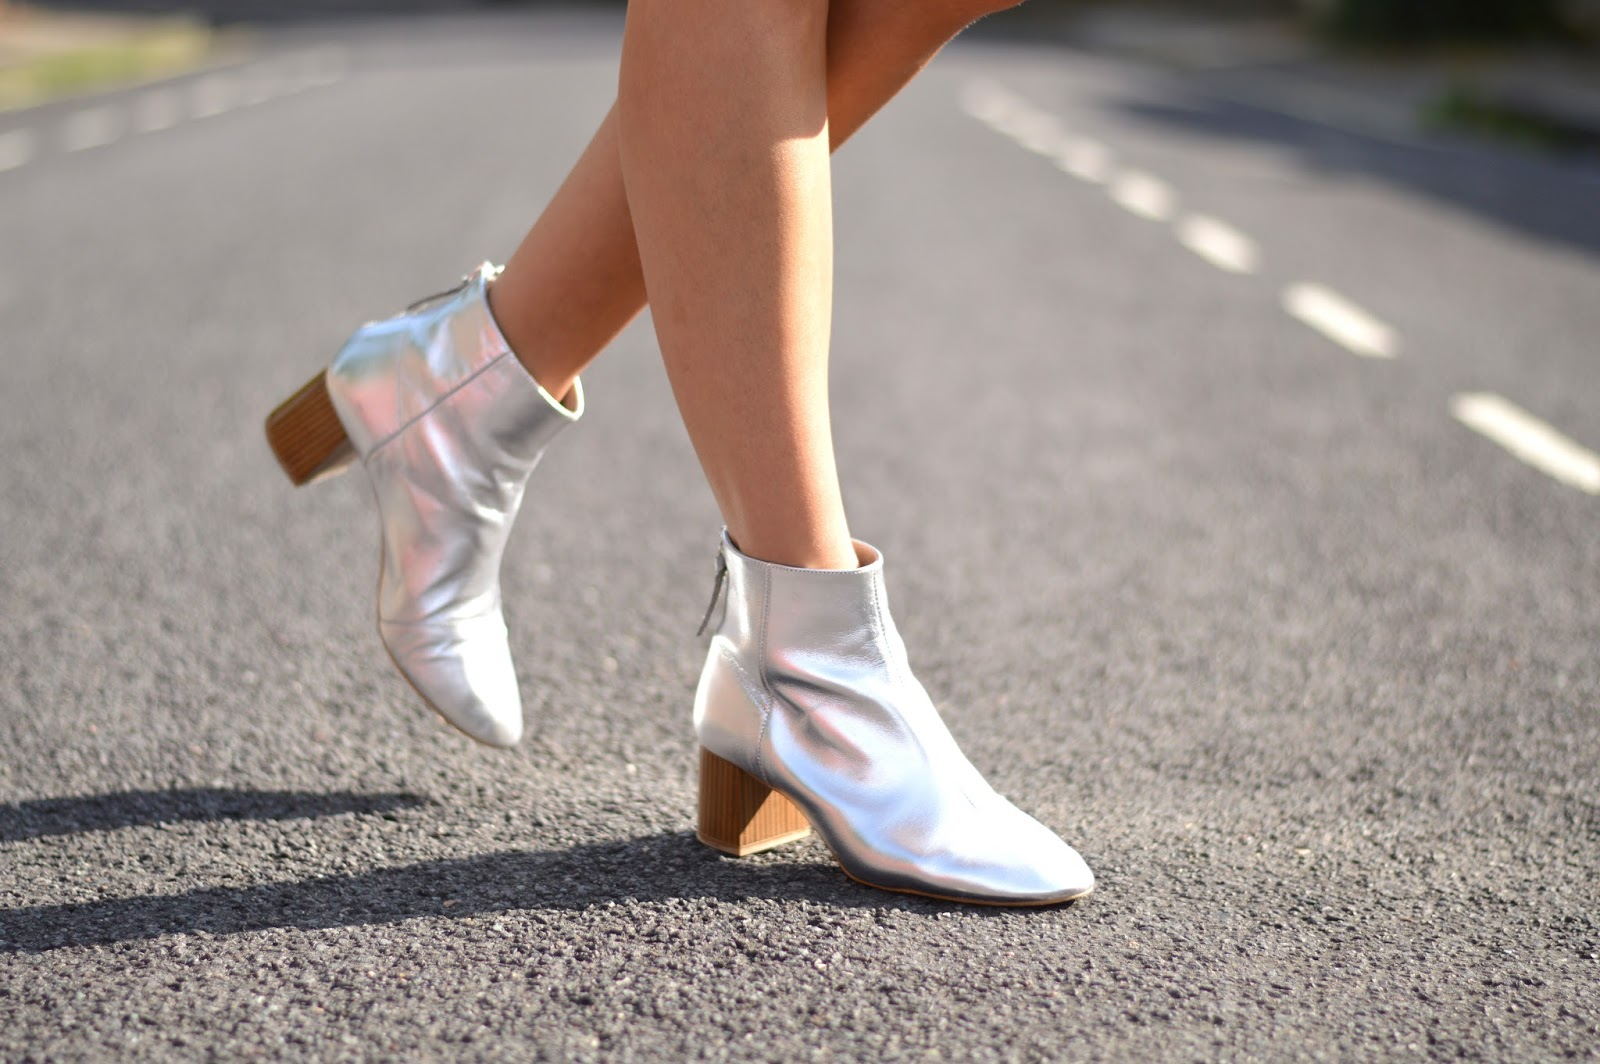 Those Office Jazz Hands silver ankle boots that I always wanted